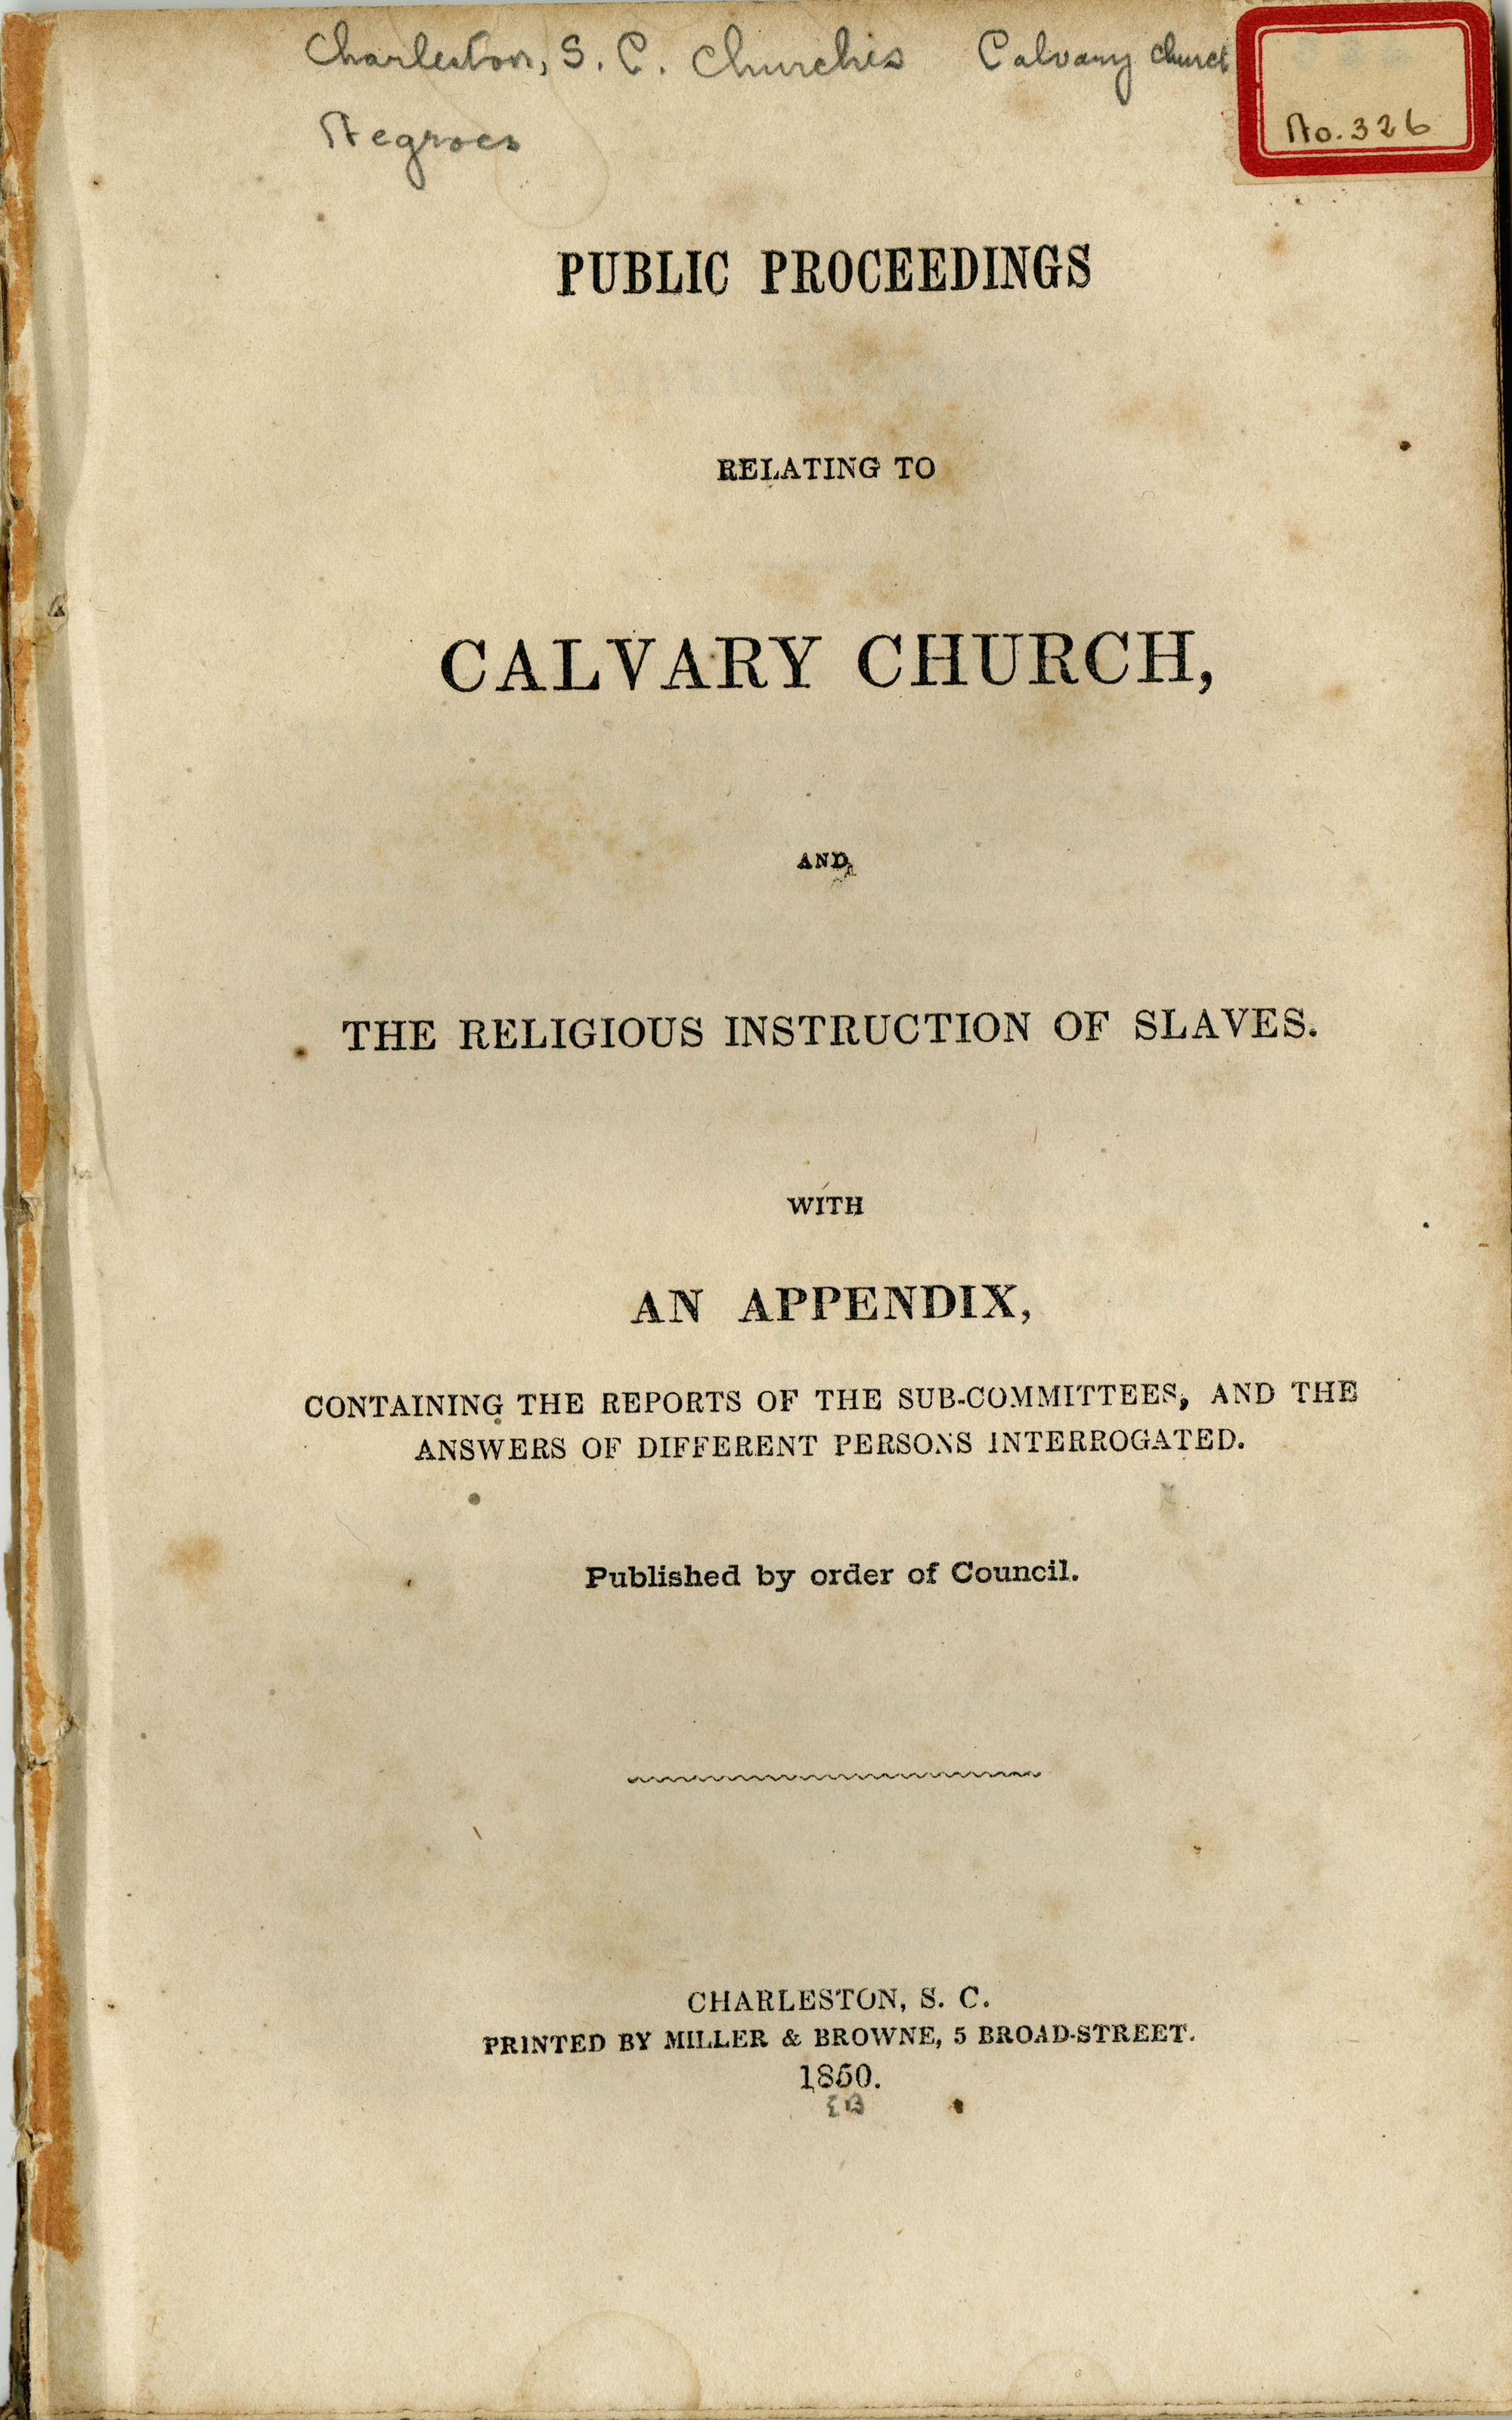 Public Proceedings Relating to Calvary Church, and the Religious Instruction of Slaves.  With an Appendix Containing the Reports of the Sub-Committees and the Answers of Different Persons Interrogated. Published by order of Council.